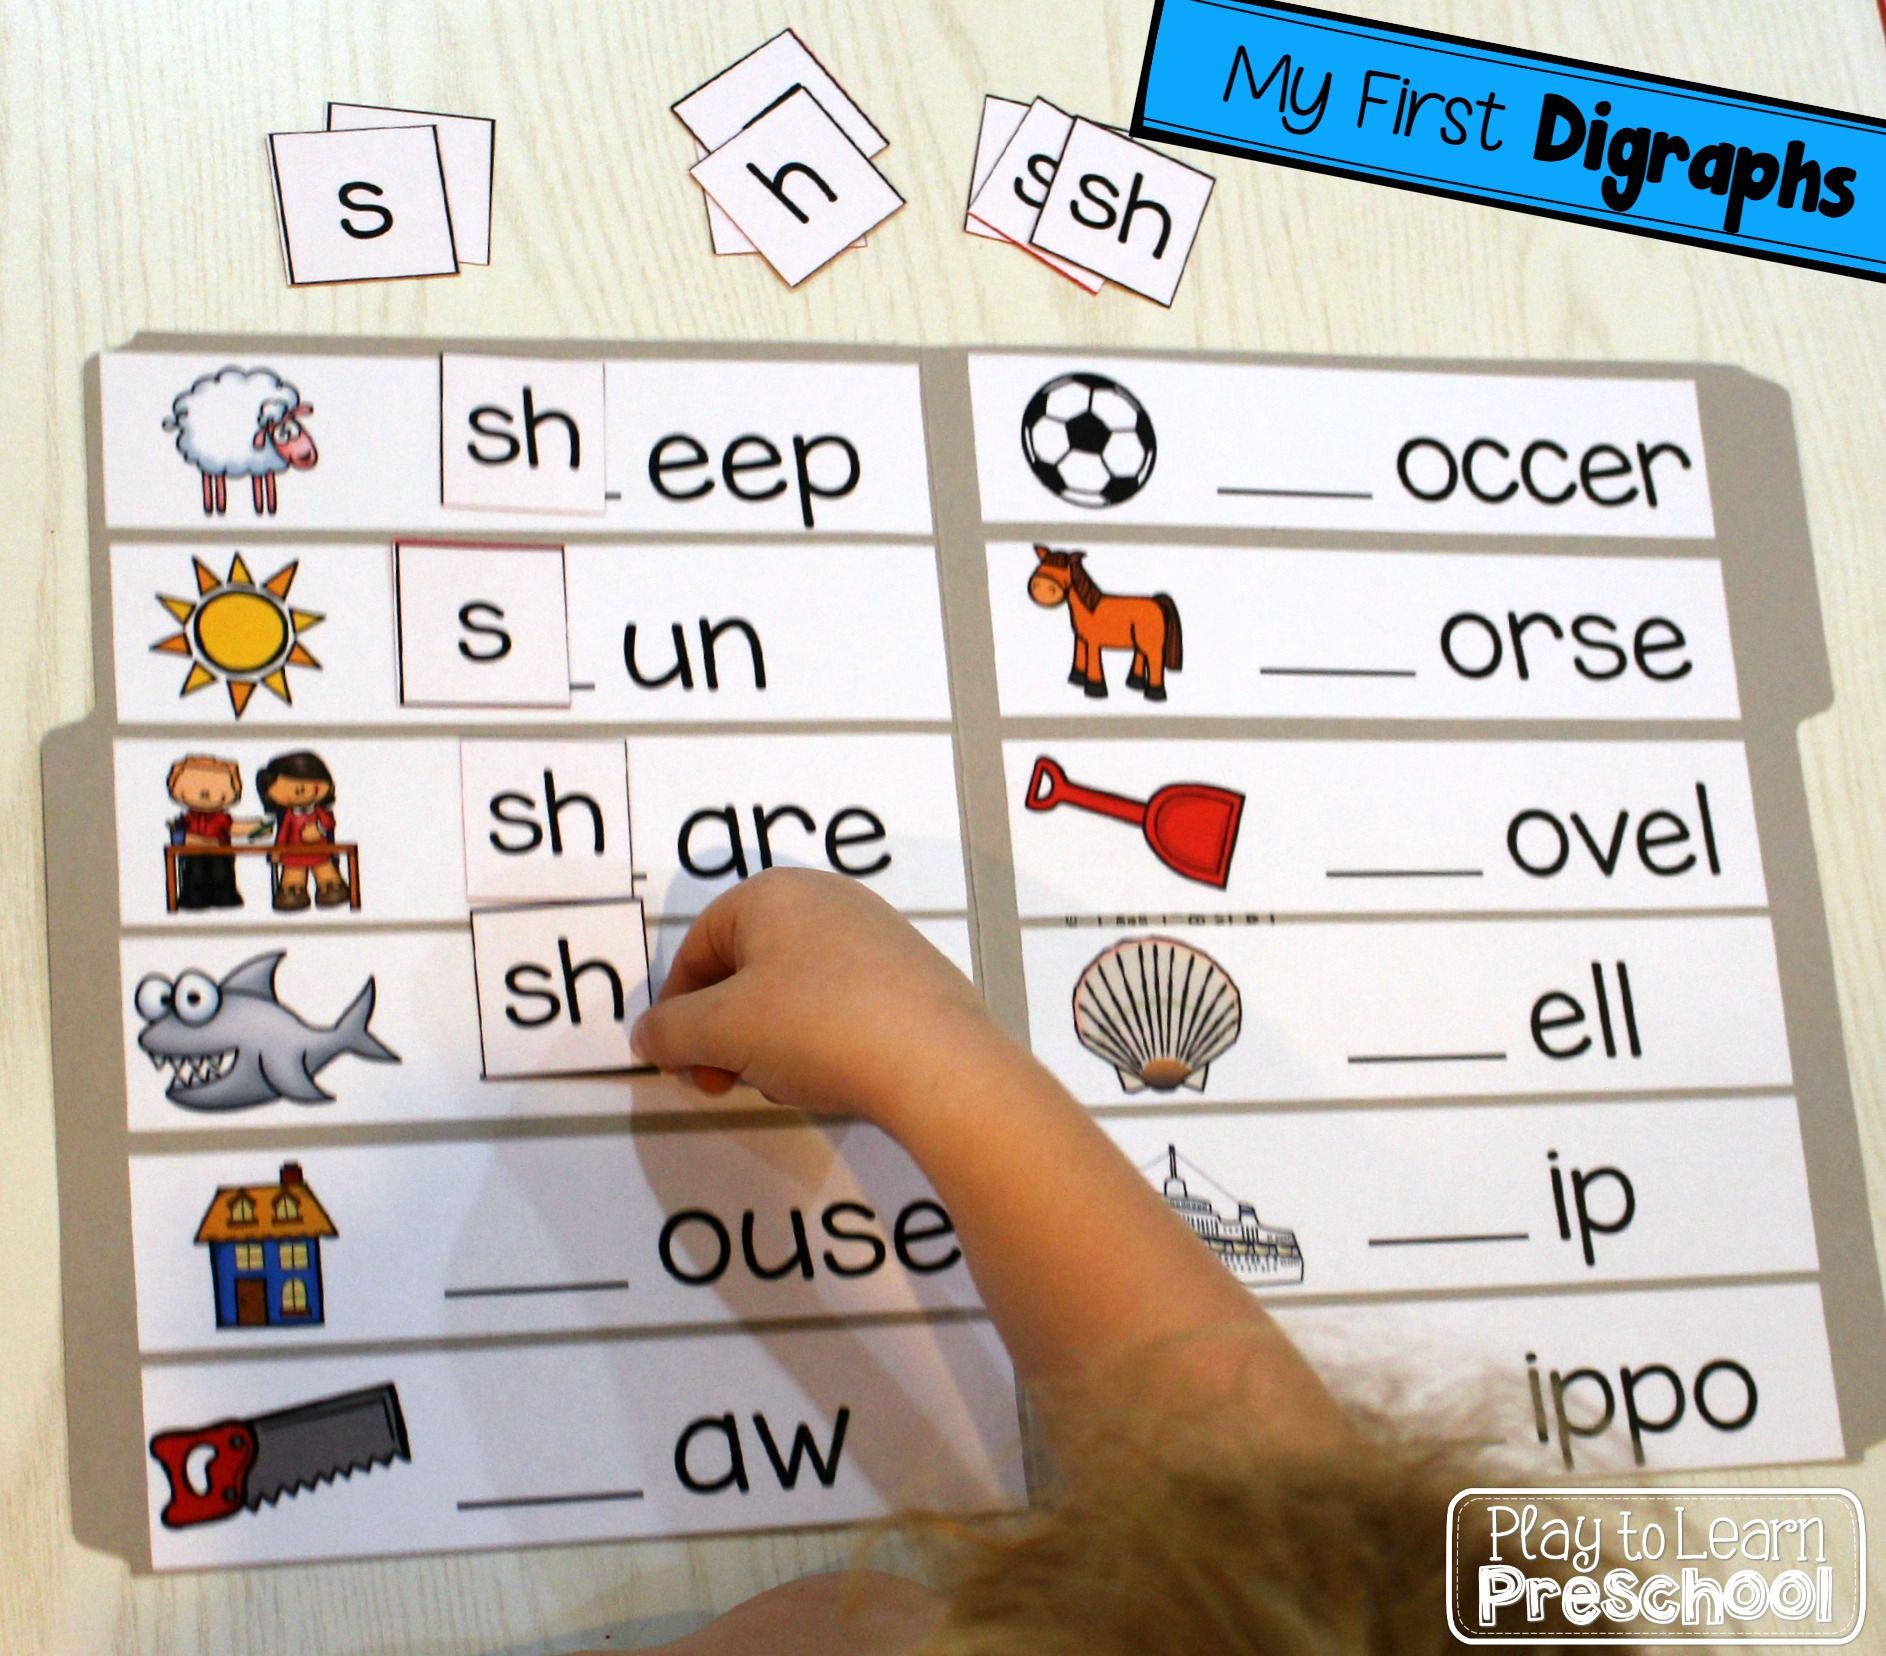 This is a great way to introduce beginning digraphs (sh, ch, th) to young learners. I love that it is hands-on.